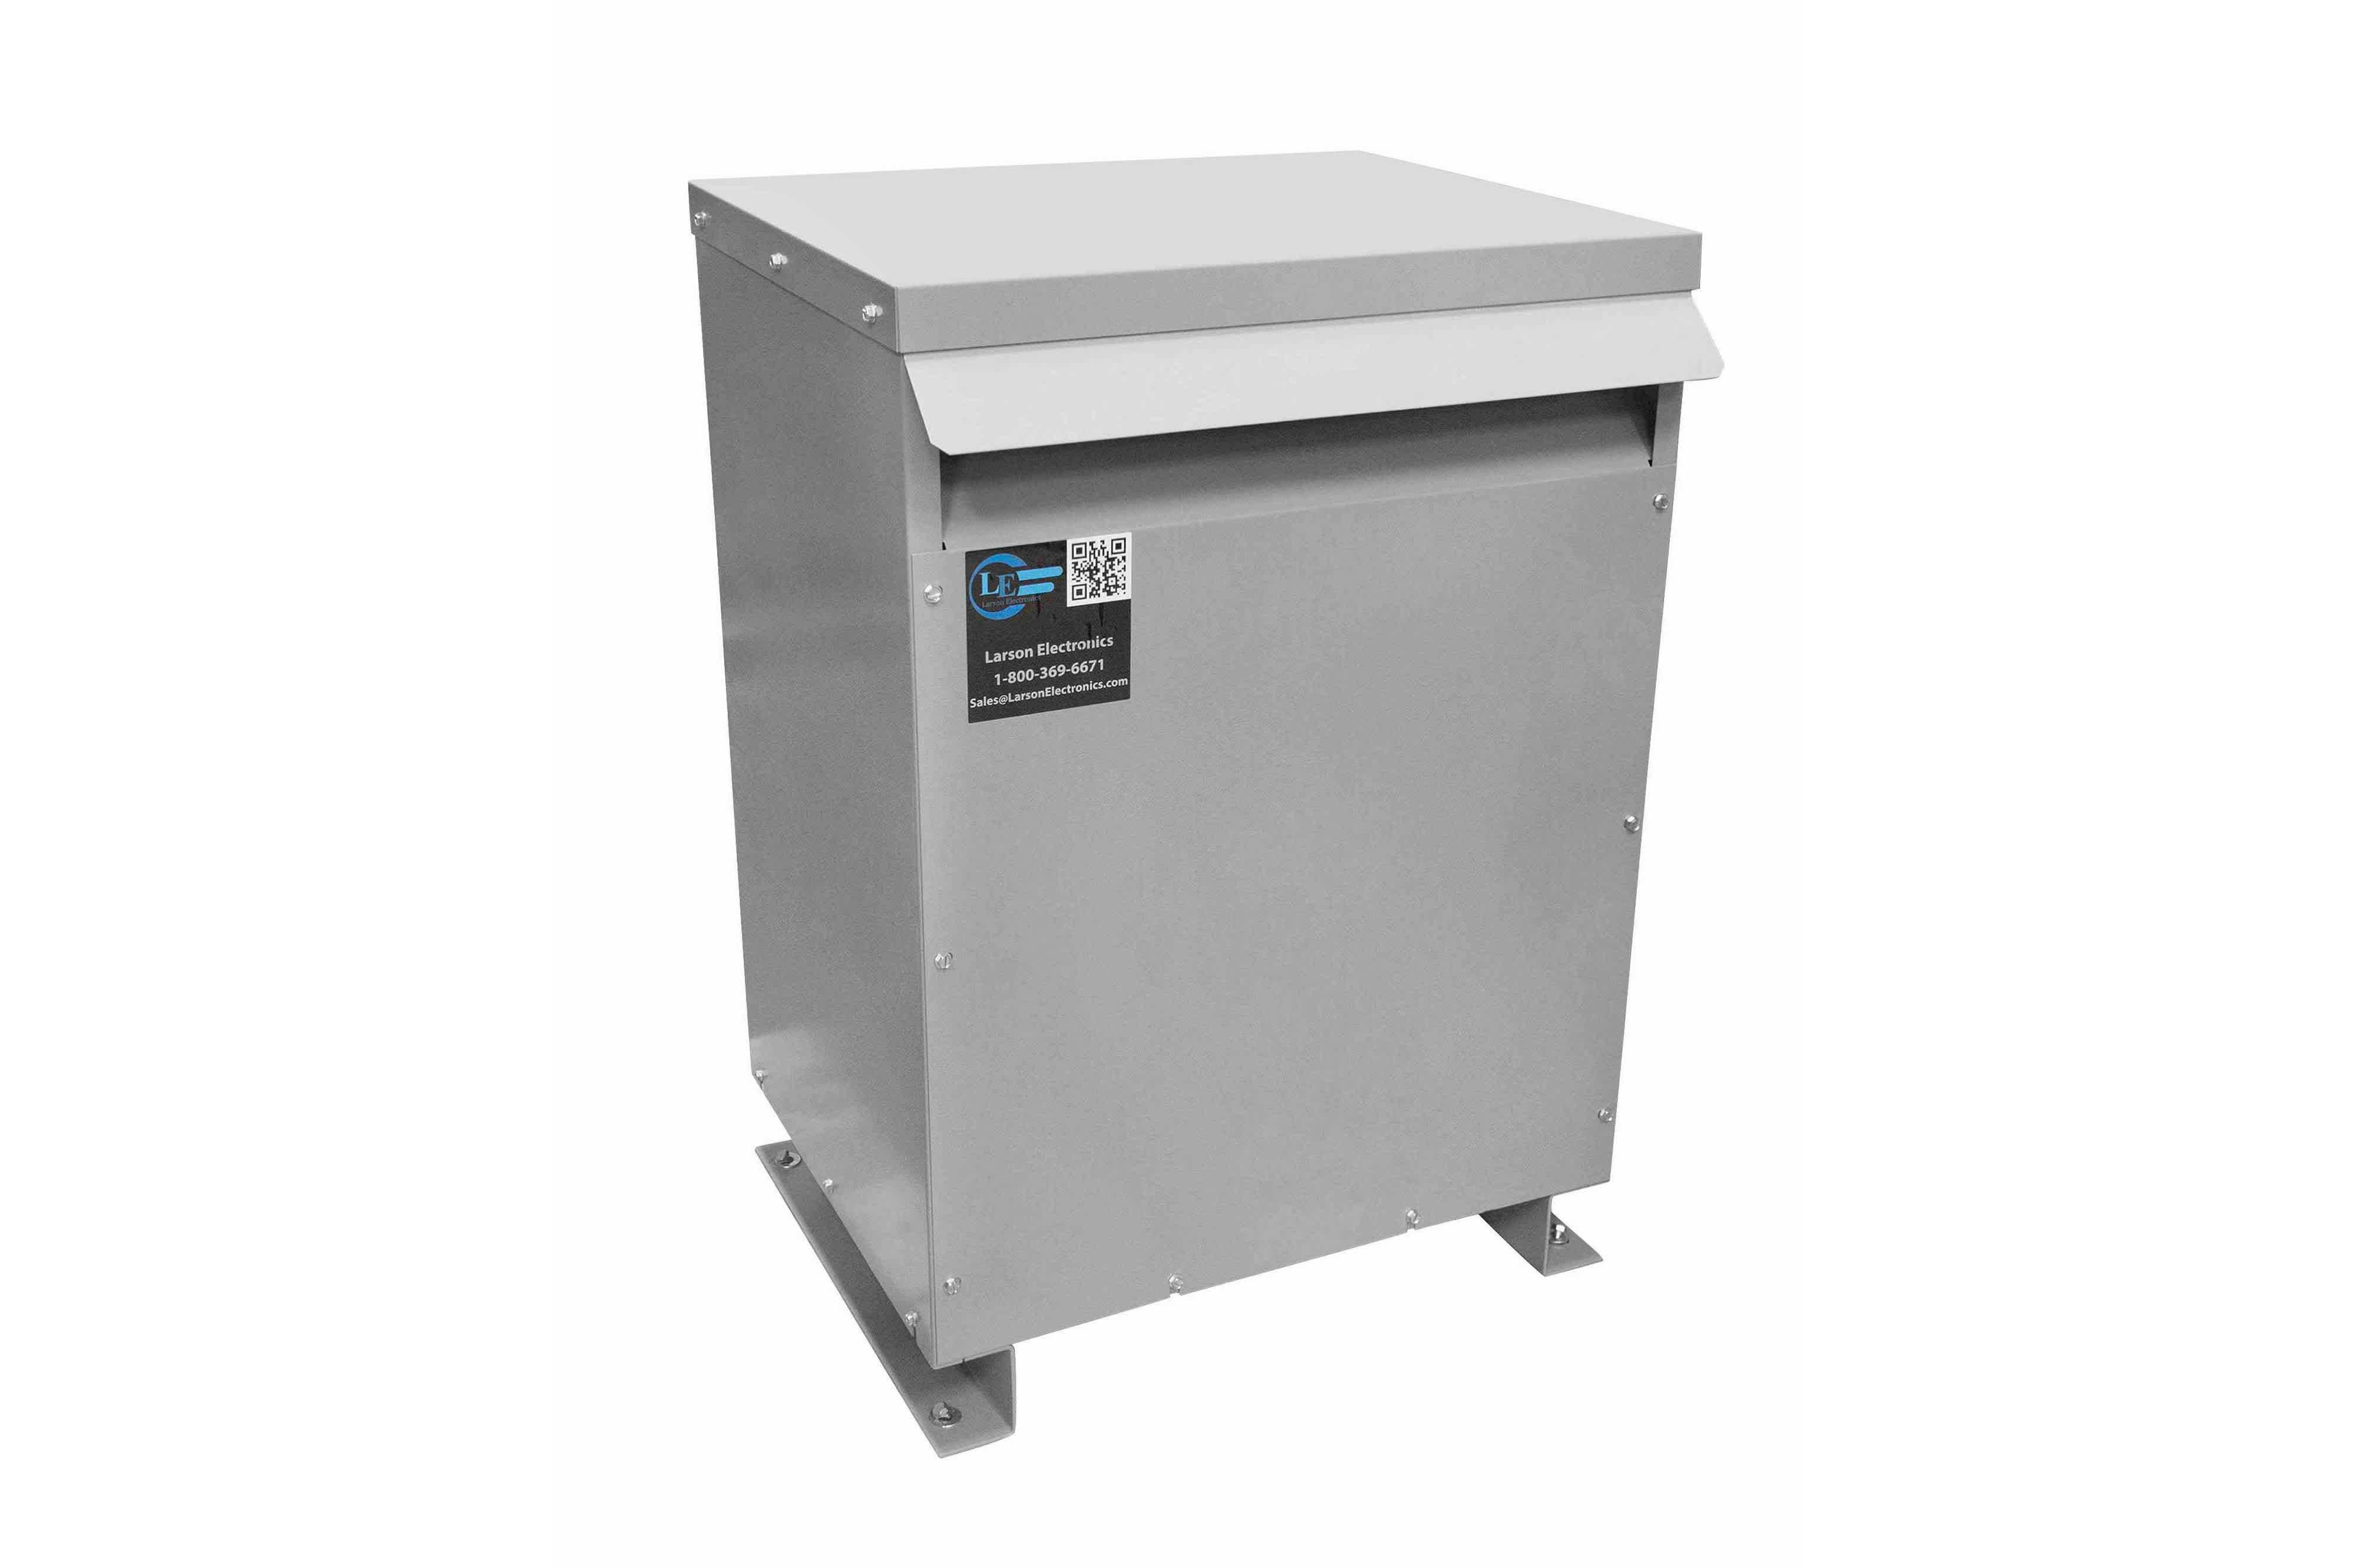 9 kVA 3PH Isolation Transformer, 440V Delta Primary, 208V Delta Secondary, N3R, Ventilated, 60 Hz